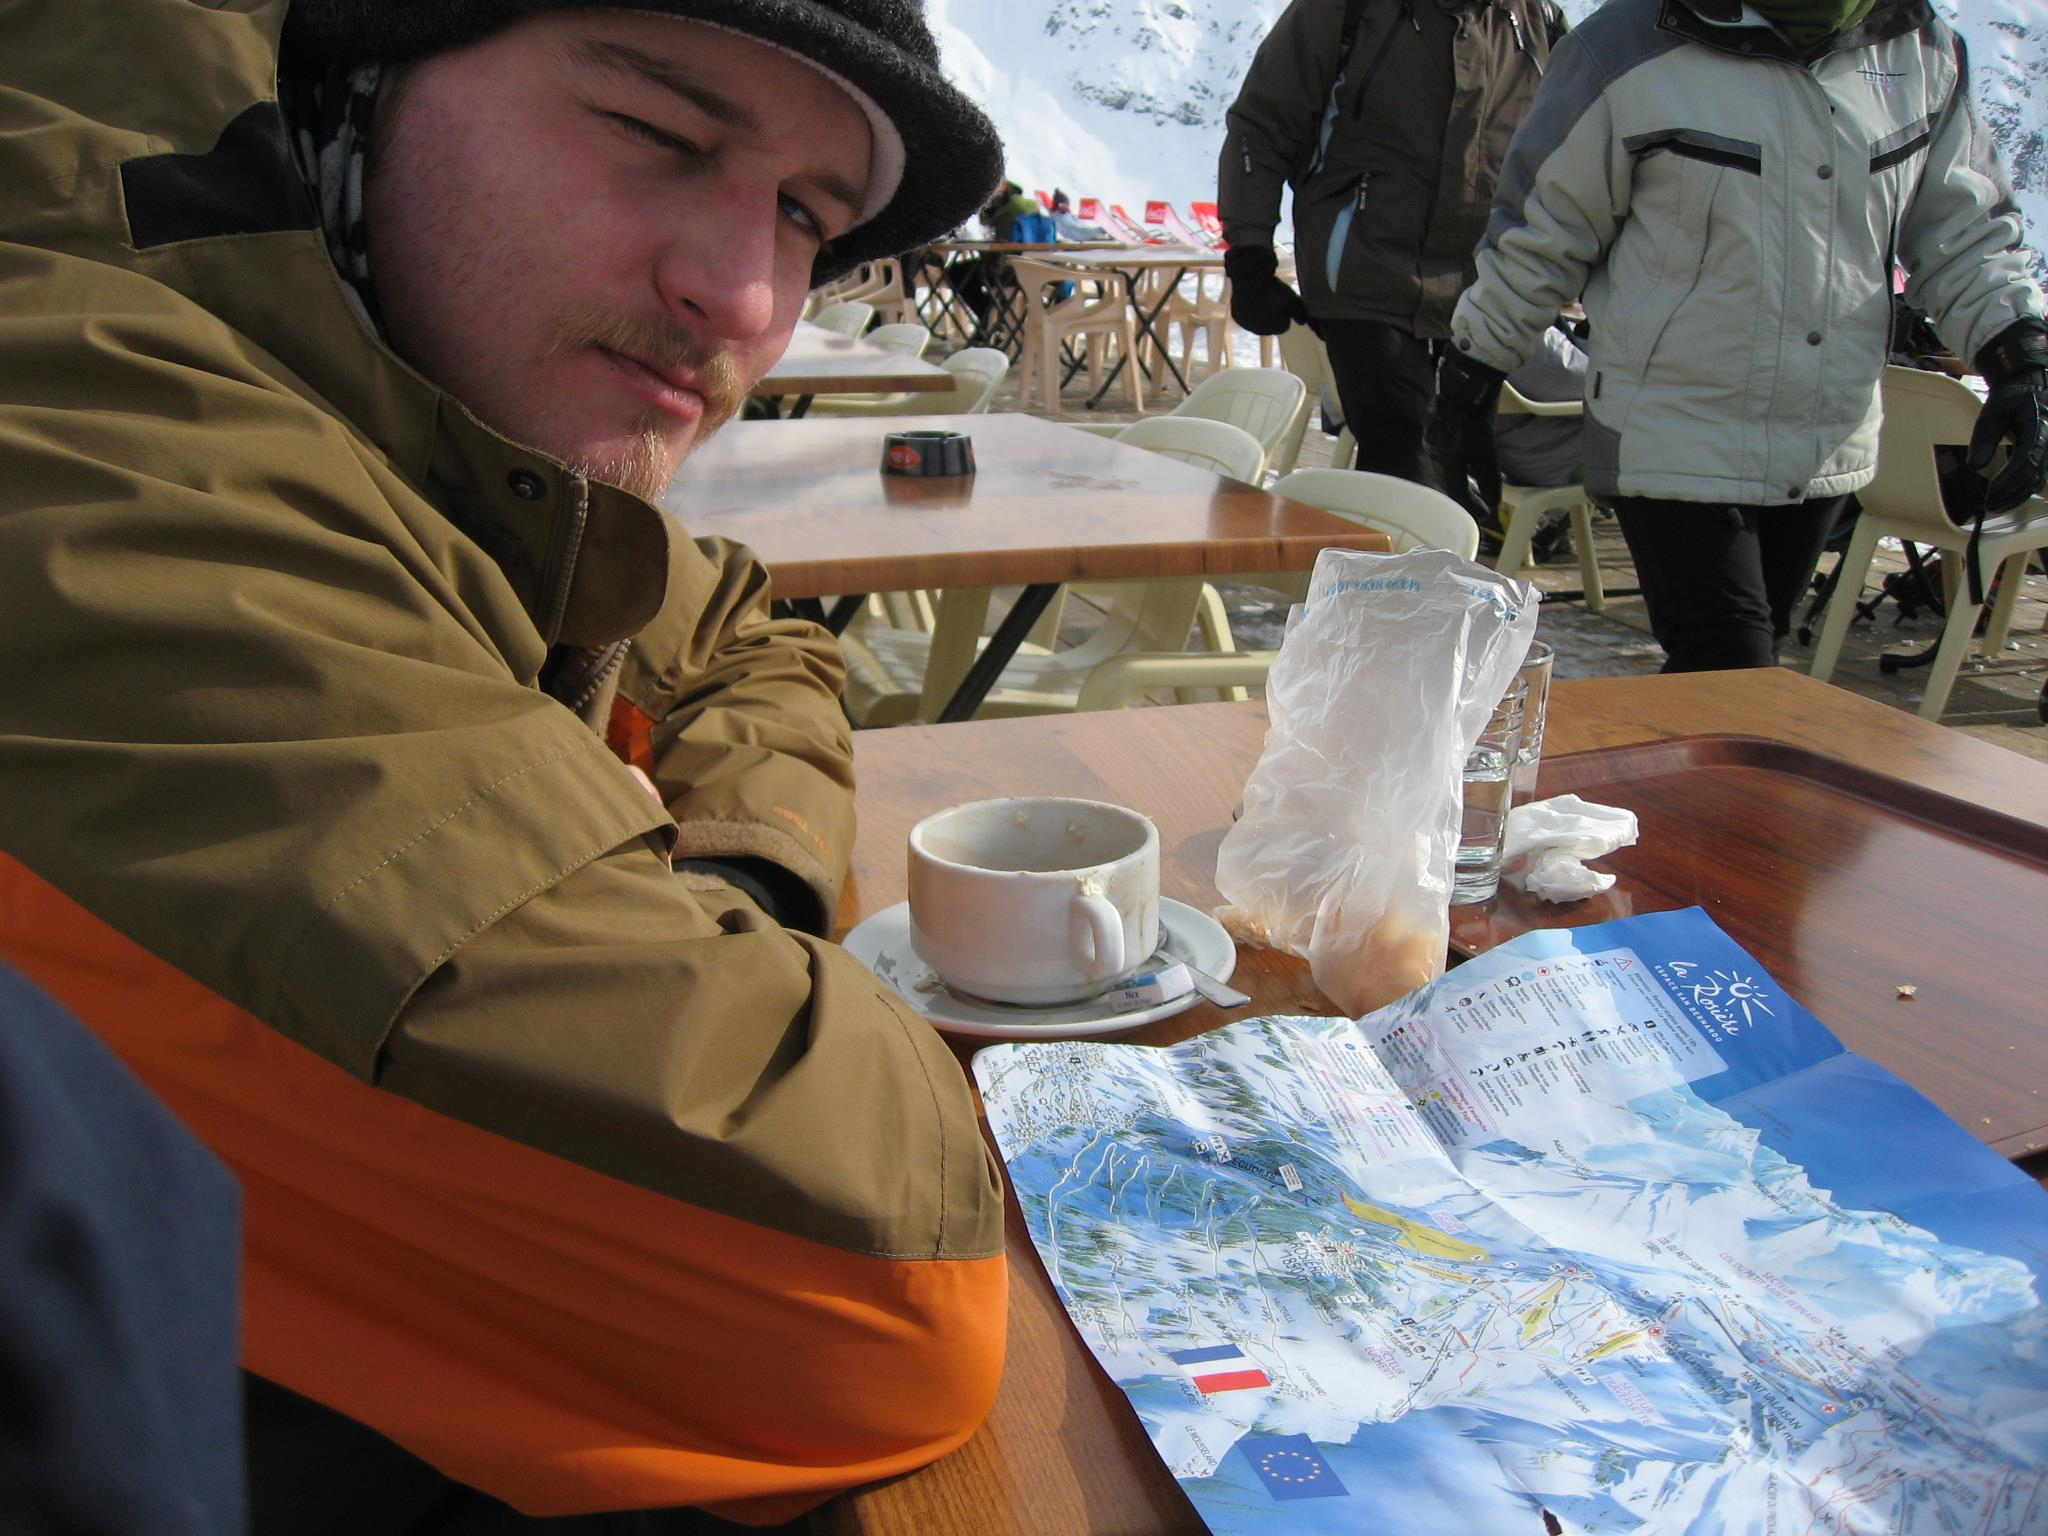 reading a ski slope map